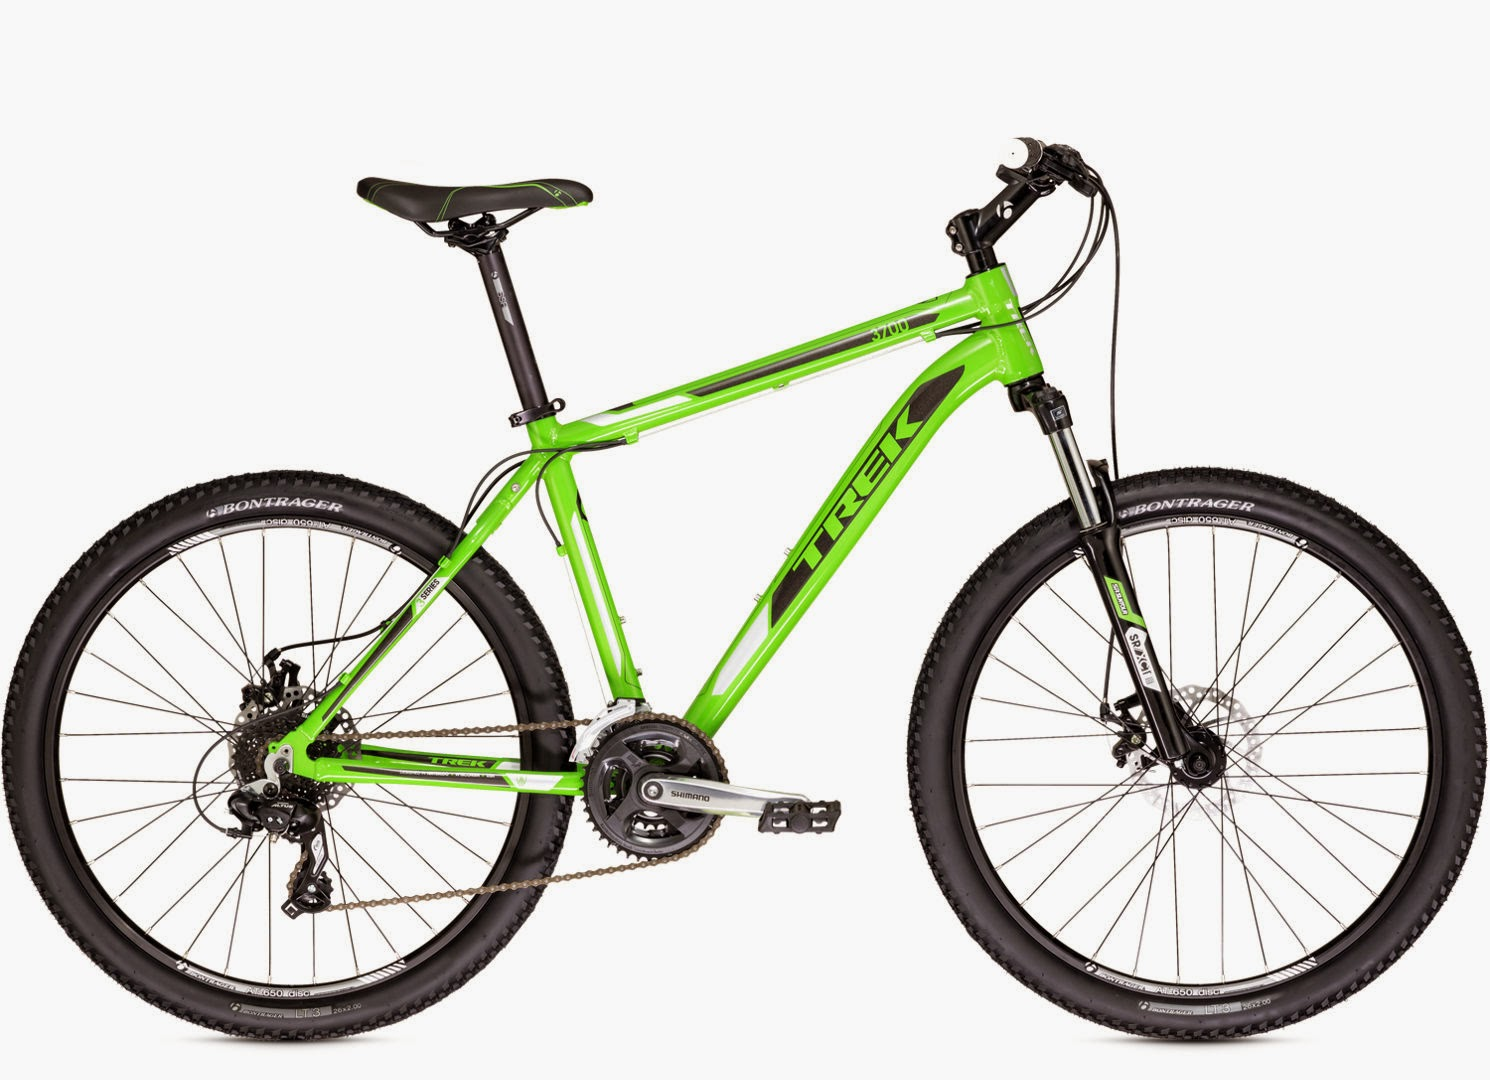 Bumsteads Road And Mountain Bikes The 2014 Trek 3700 Disc